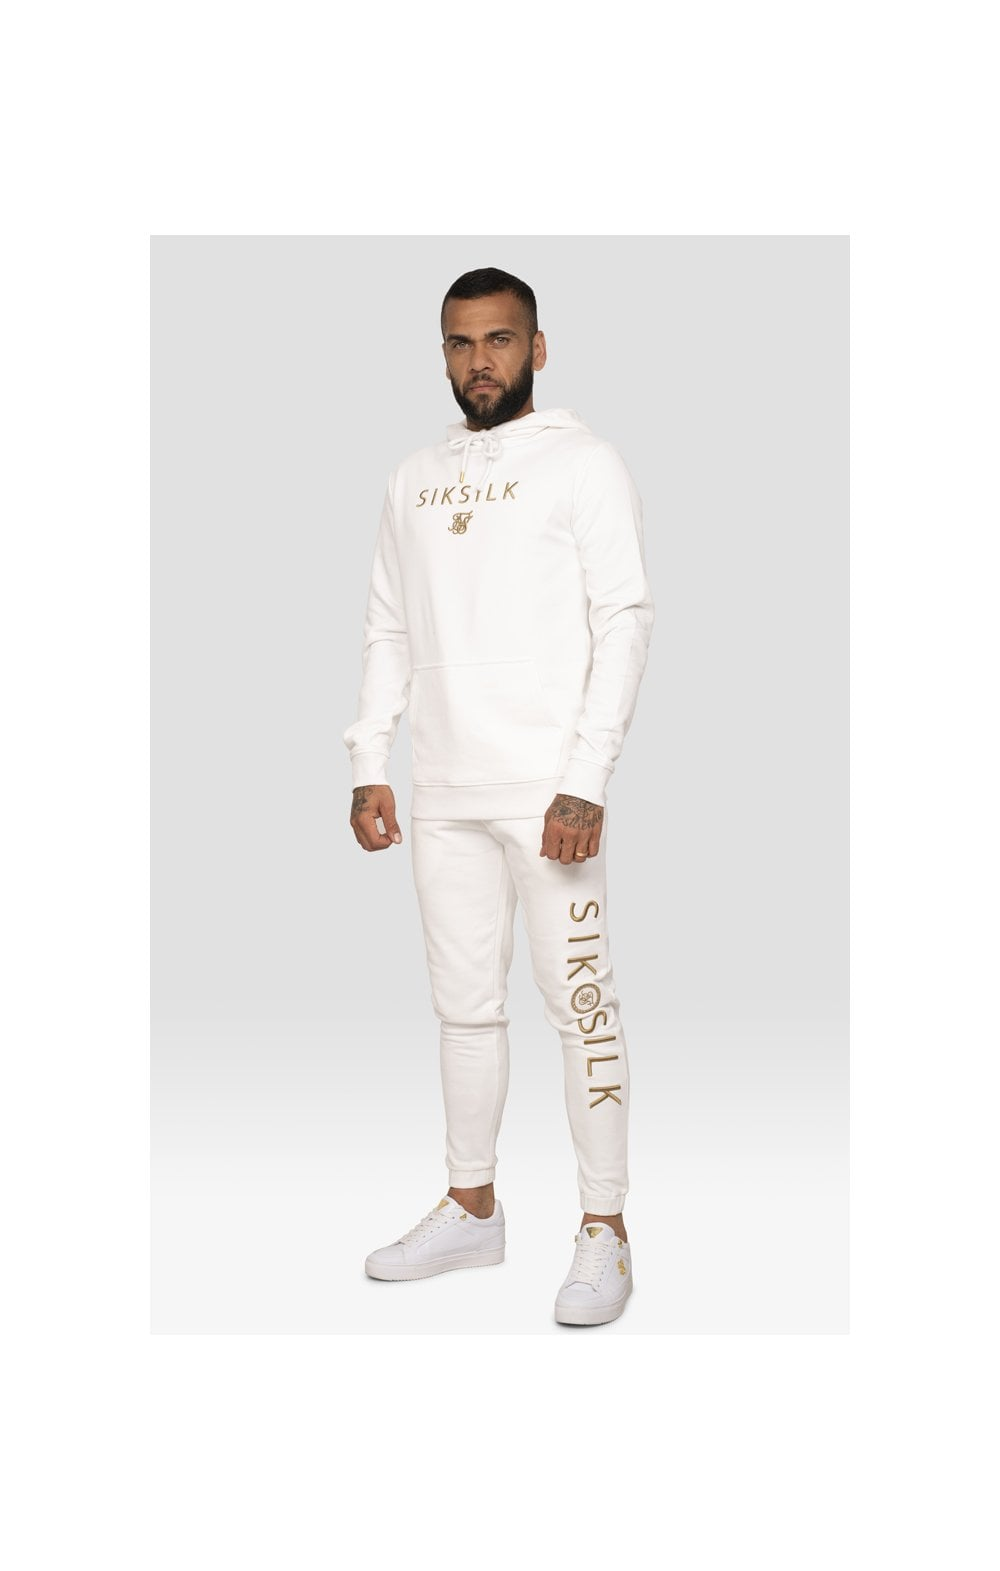 SikSilk x Dani Alves Sweat à Capuche - Blanc (2)